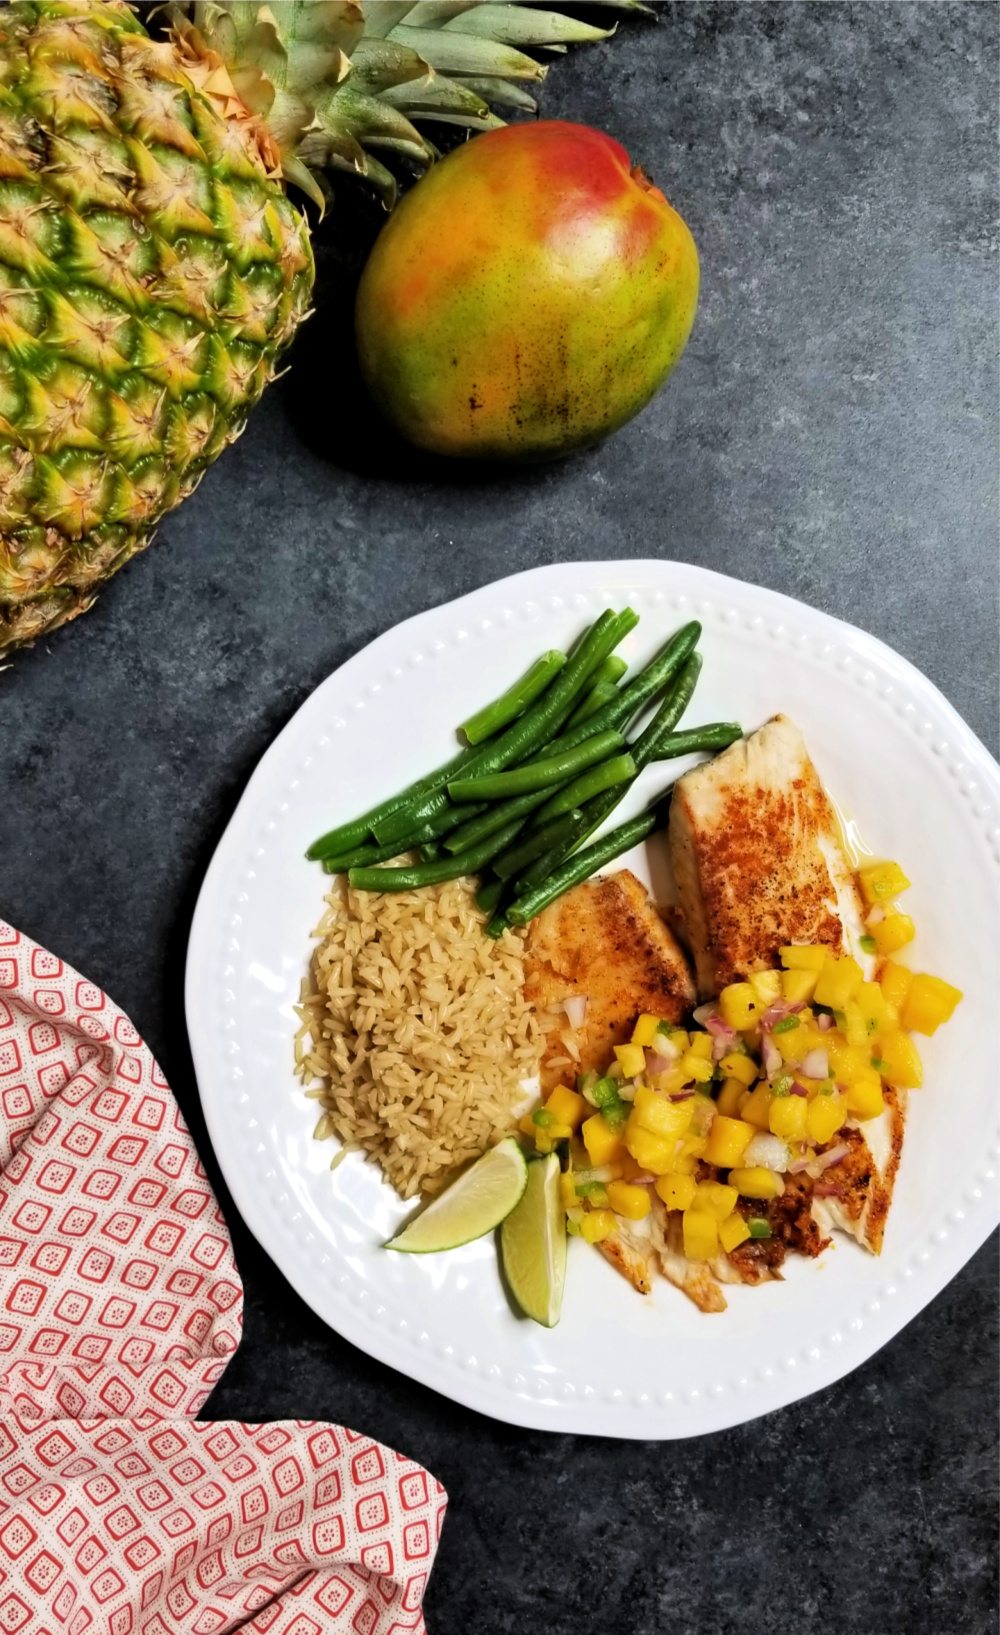 This grilled tilapia recipe is a must for your summer grilling. Lighten up your summer with delicious grilled tilapia topped with a fresh pineapple mango salsa. You can't beat a fresh juicy pineapple, and the mango puts this grilled fish and tropical salsa recipe over the top. Diced jalapeno adds just the right amount of kick to this light, refreshing summertime meal. It's a simple grilled fish recipe that takes little time to prepare.